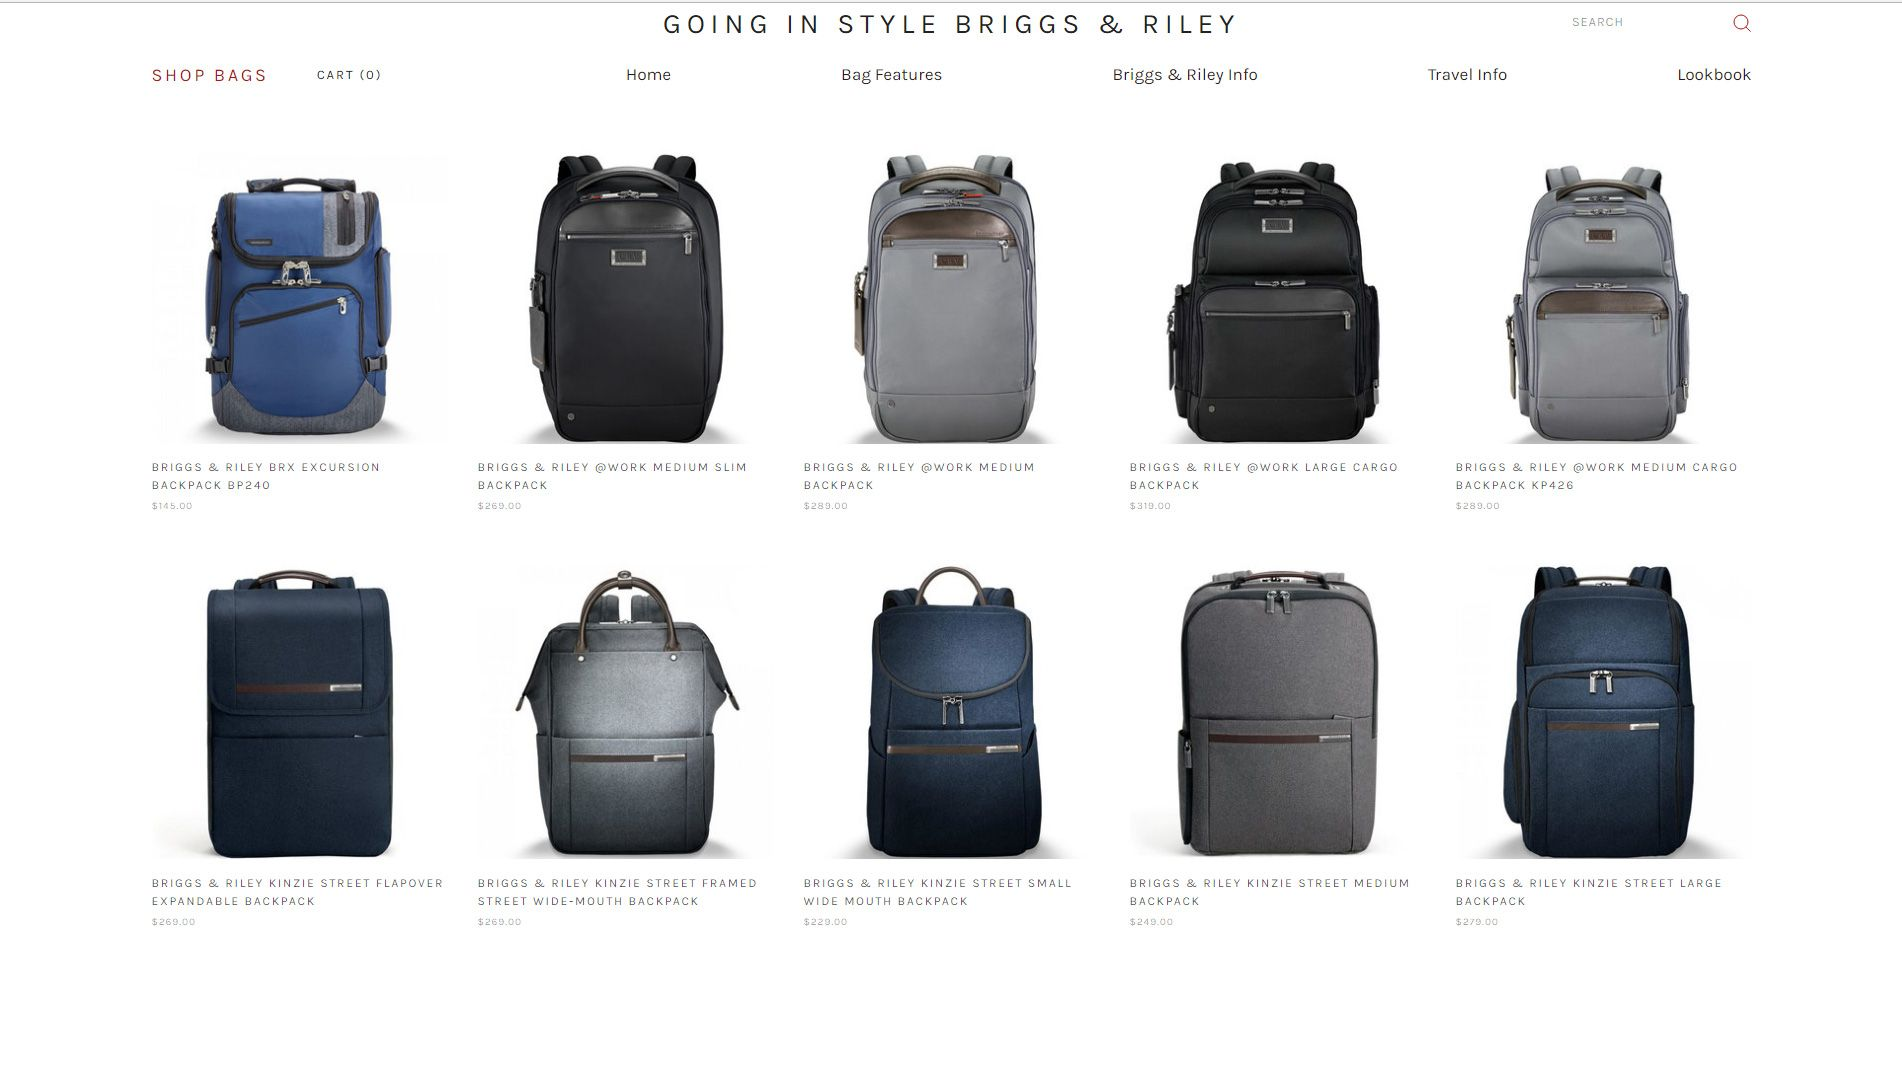 ba23d2e9c Shop Briggs & Riley Backpacks FREE SHIPPING on all Briggs & Riley Backpacks.  Shop work backpacks and travel backpacks that will last a lifetime.